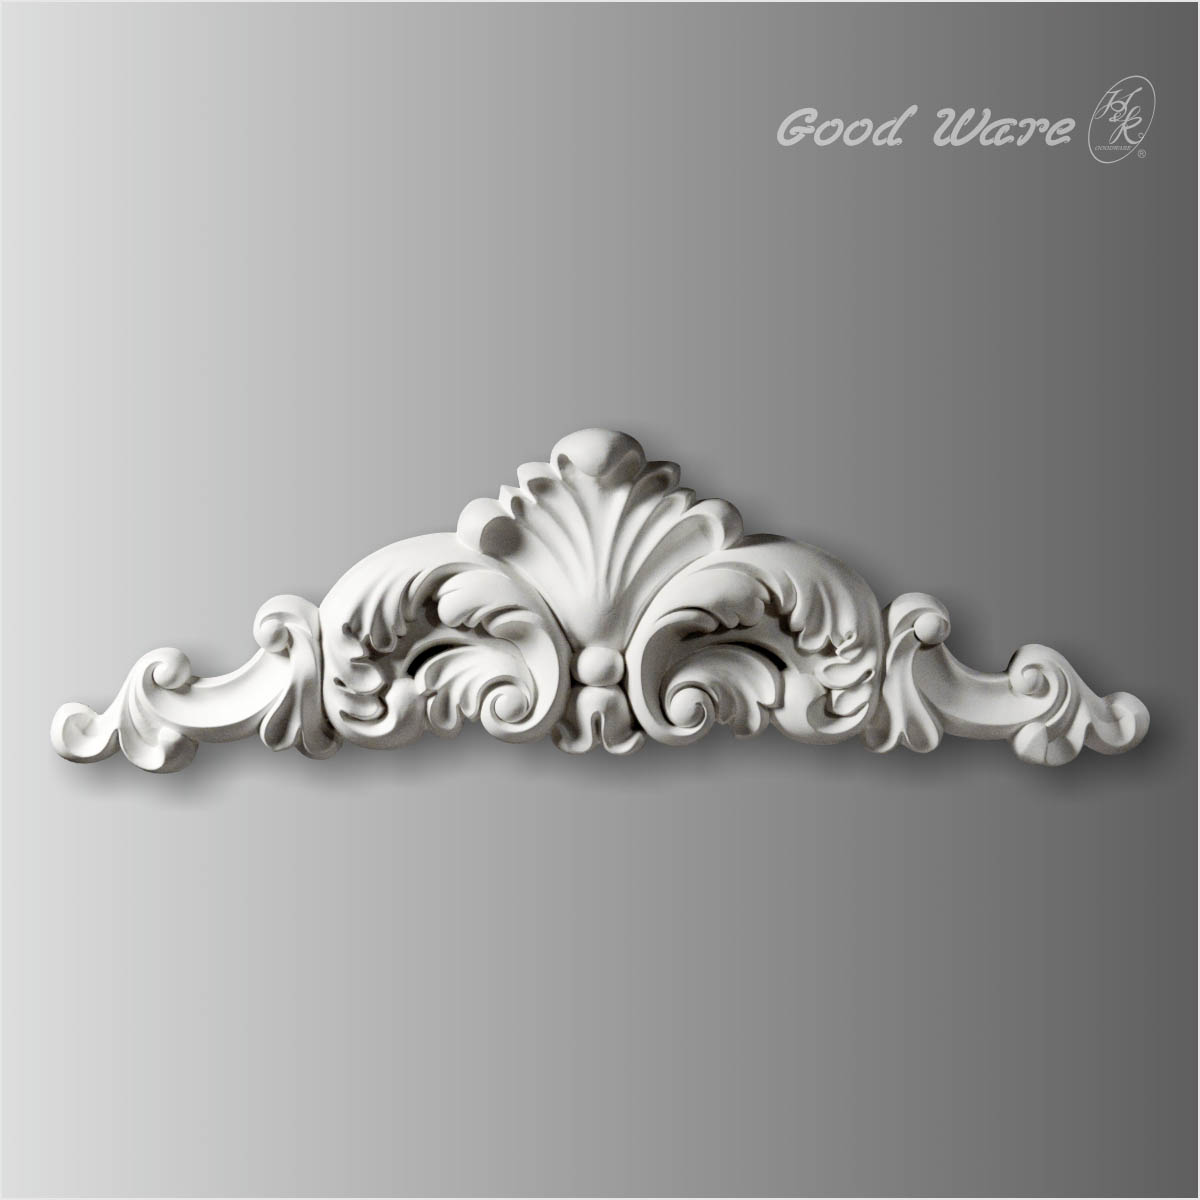 Decorative polyurethane trim pieces